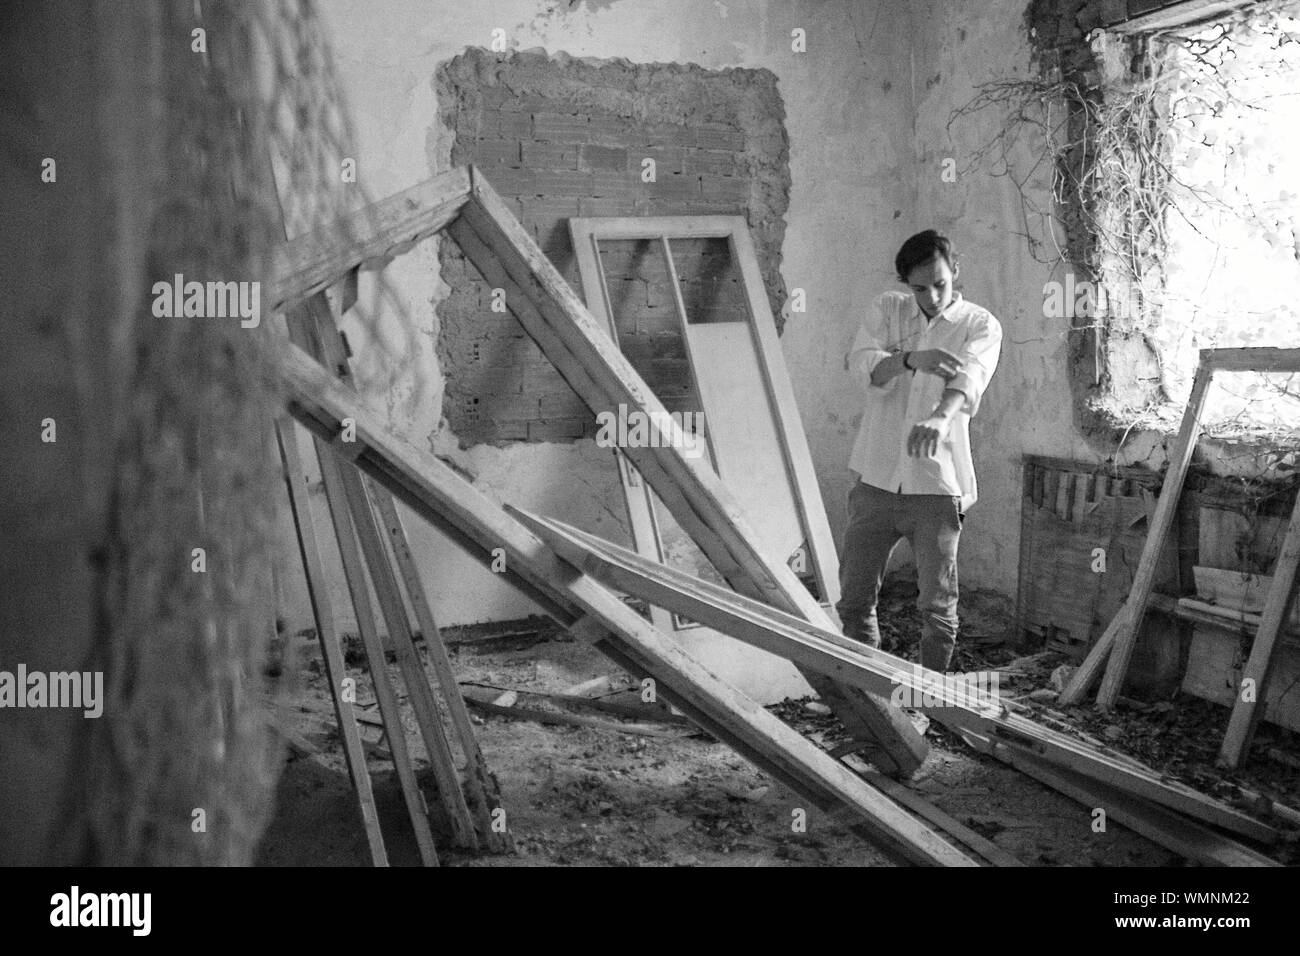 Portrait Of Man In Abandoned Building Stock Photo Alamy